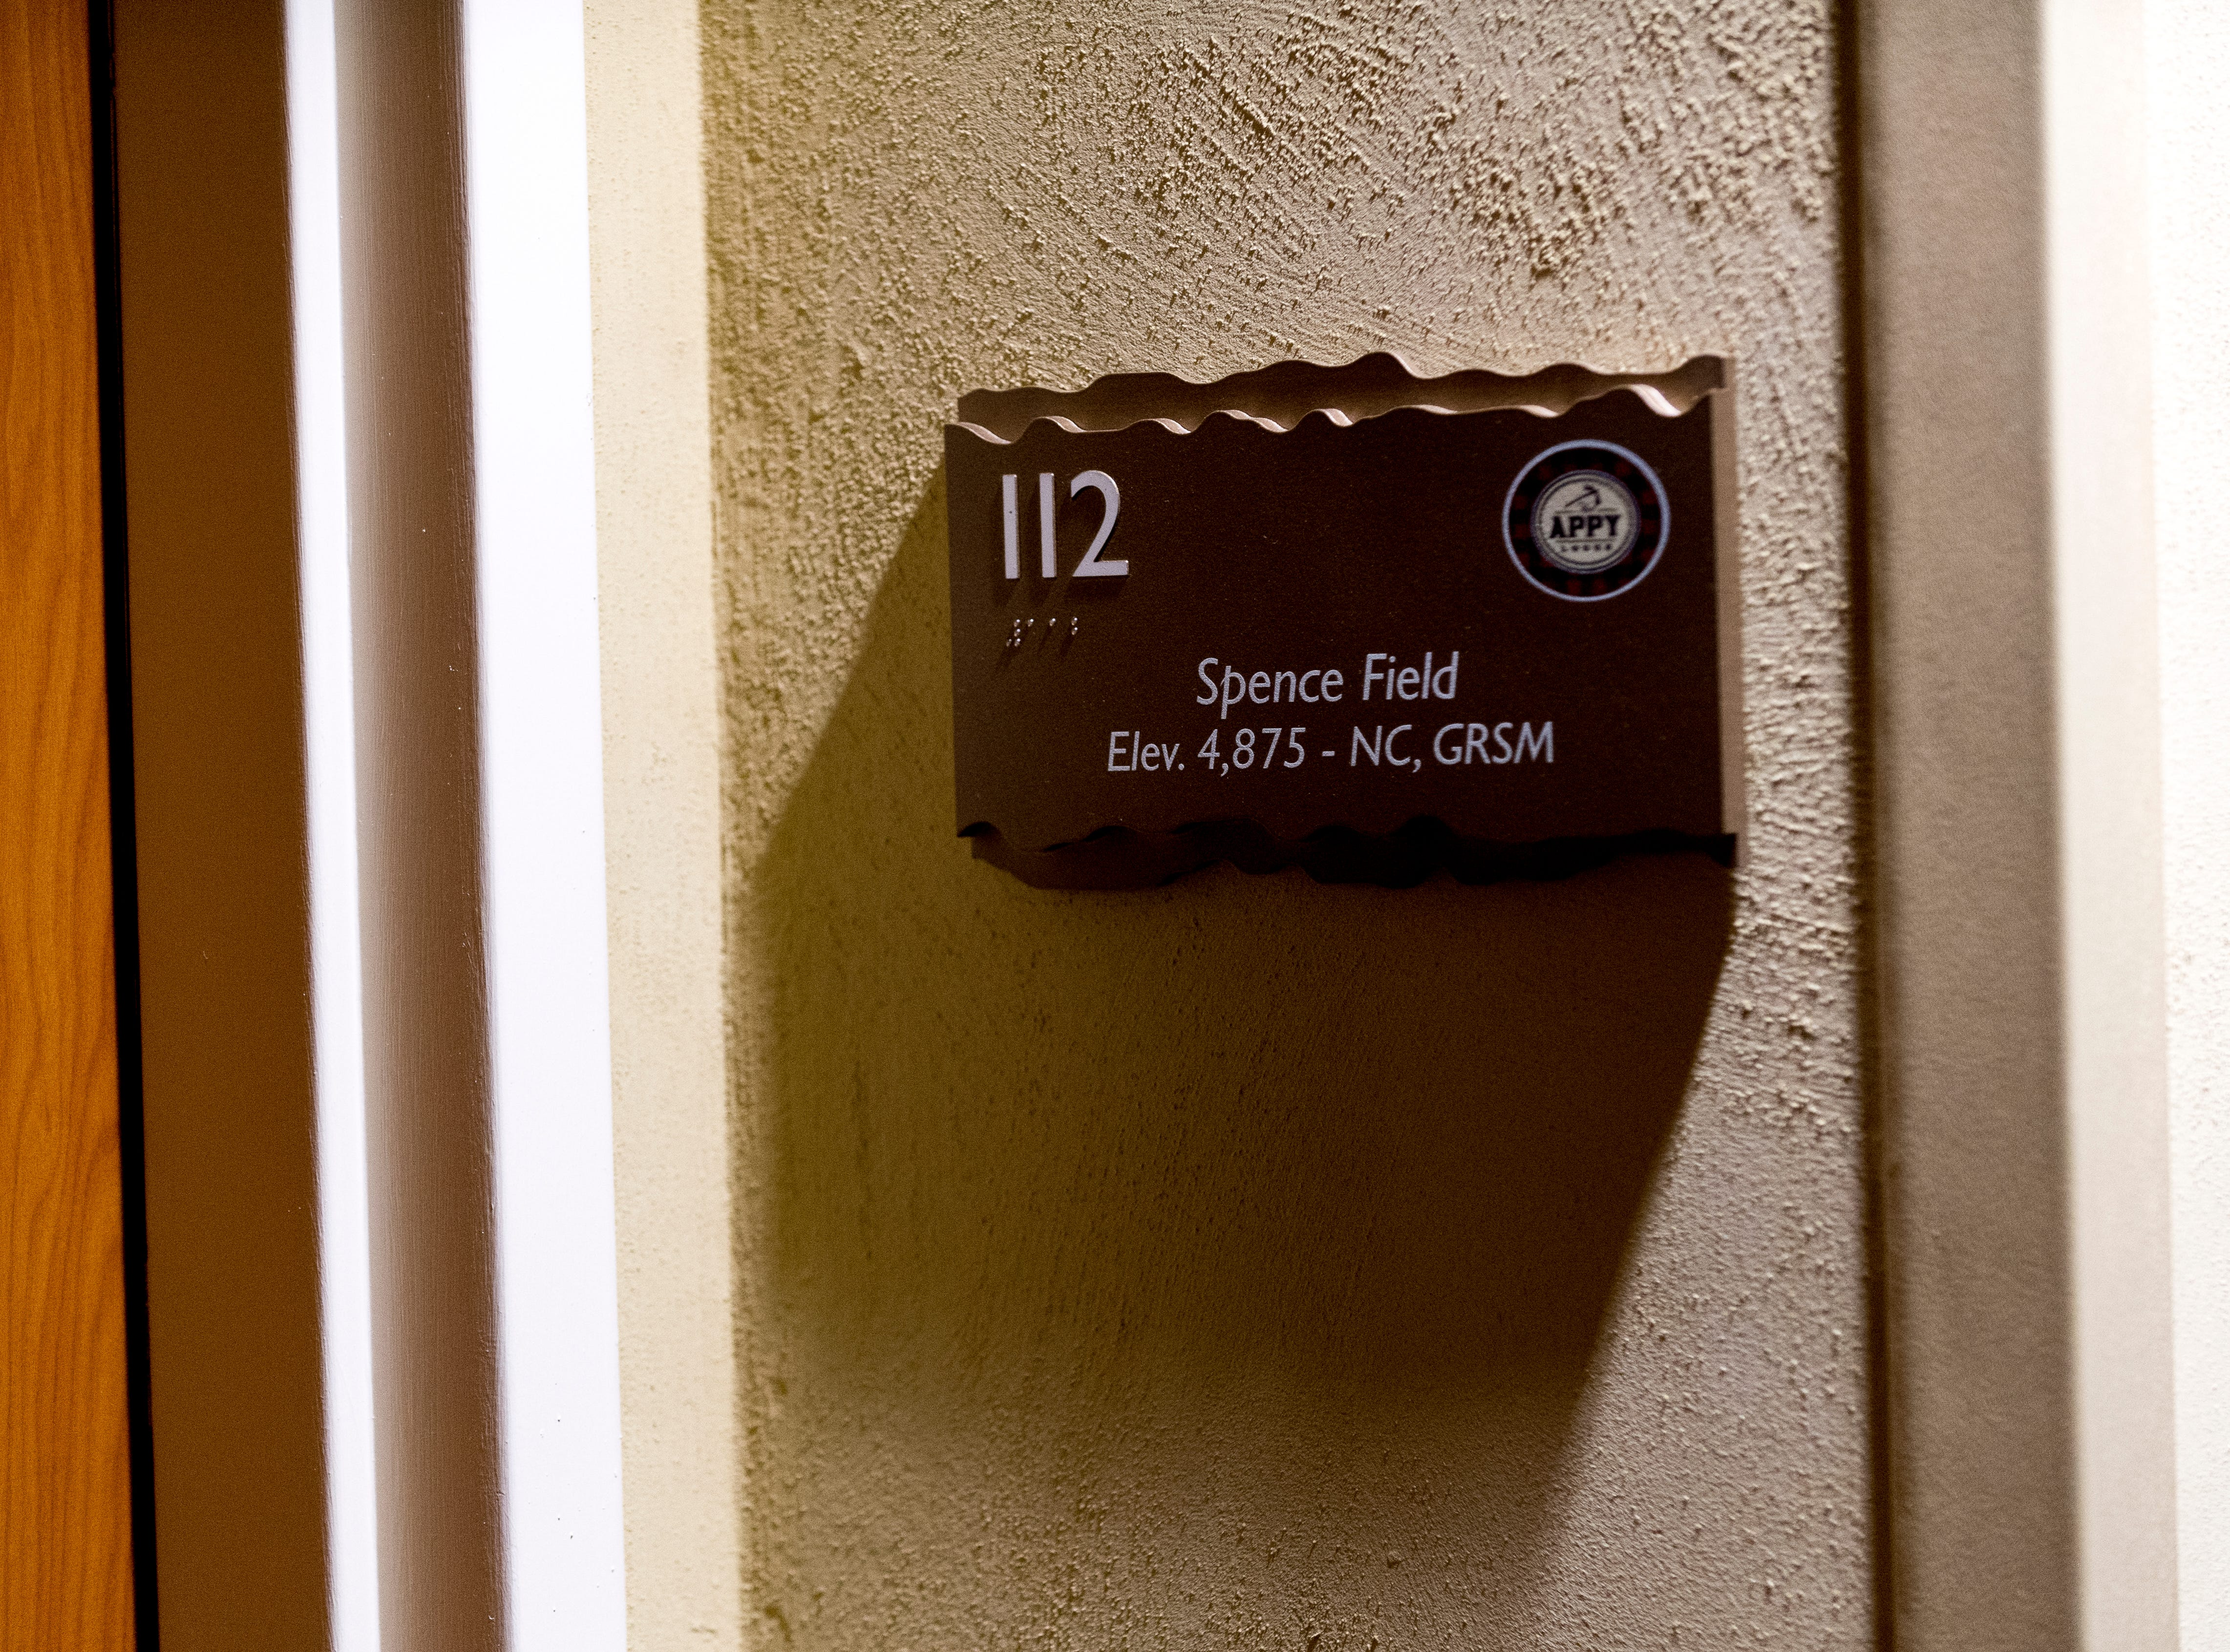 A room number sign in the hallway The Appy Lodge in Gatlinburg, Tennessee on Tuesday, September 18, 2018. The hotel partnered with Appalachian organizations to create a Appalachian Trail theme.